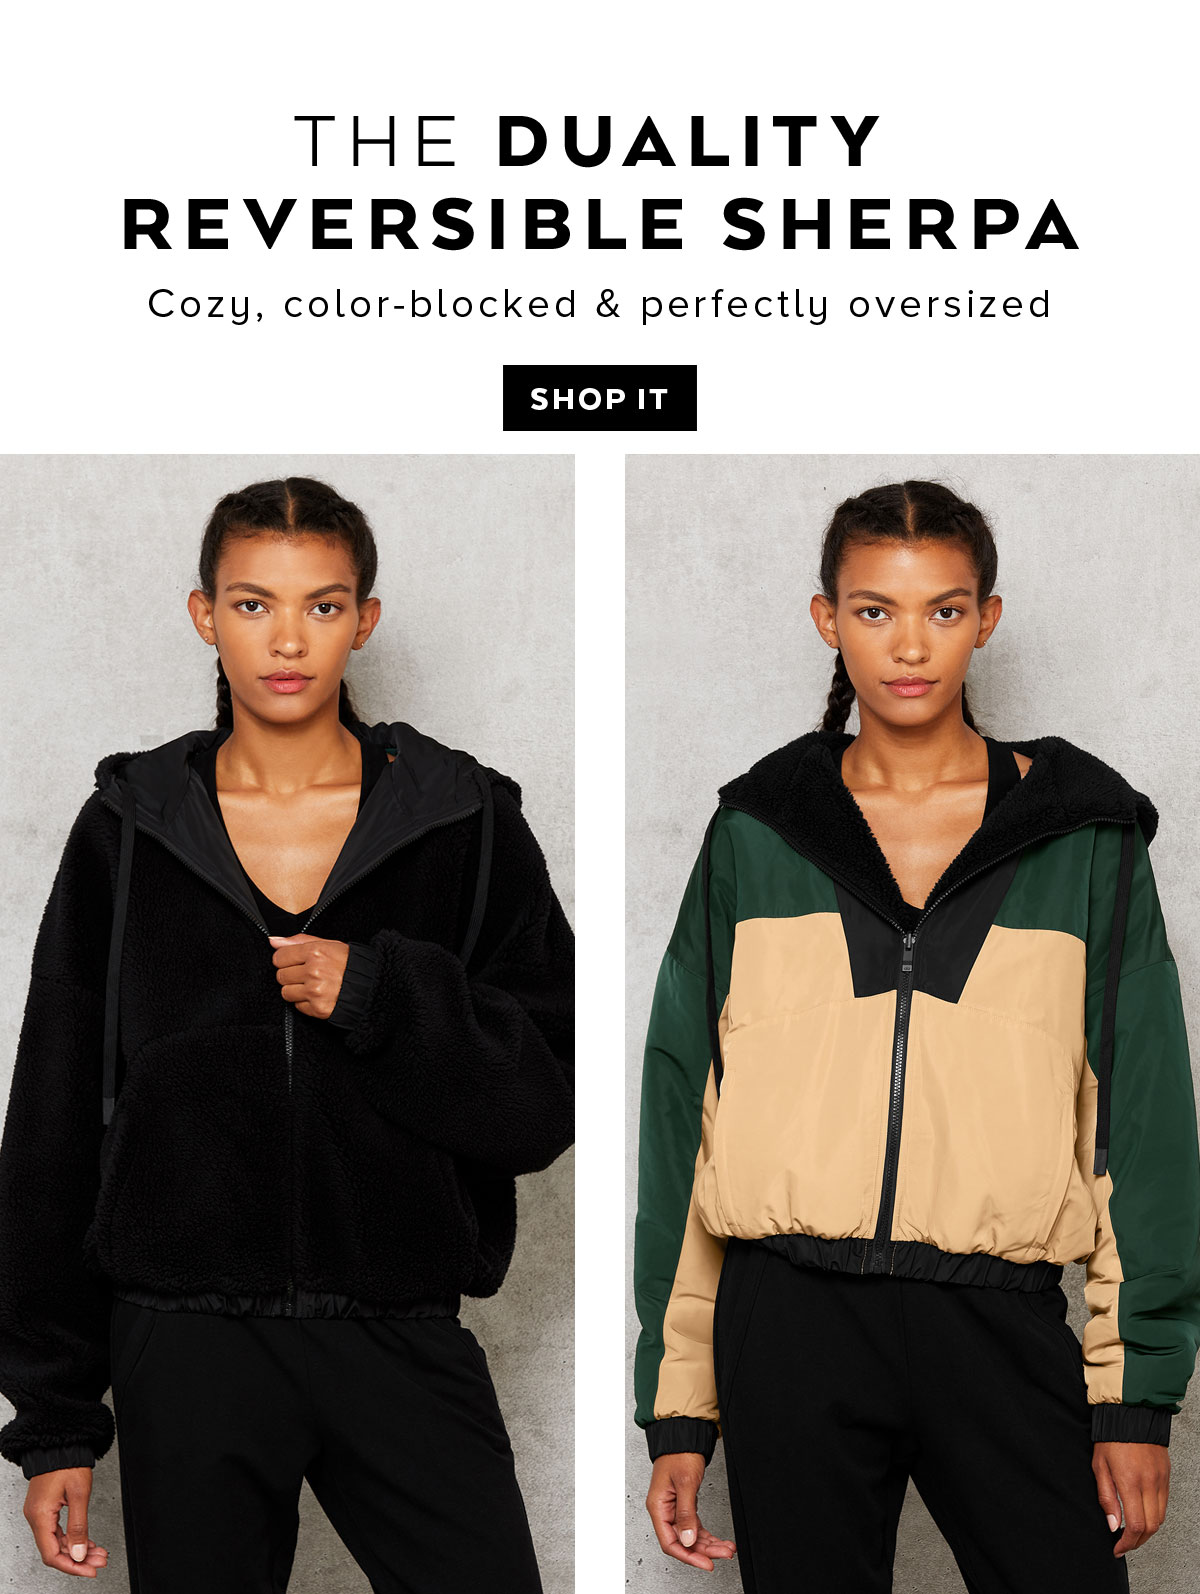 THE DUALITY REVERSIBLE SHERPA. Cozy, color-blocked & perfectly oversized. SHOP IT